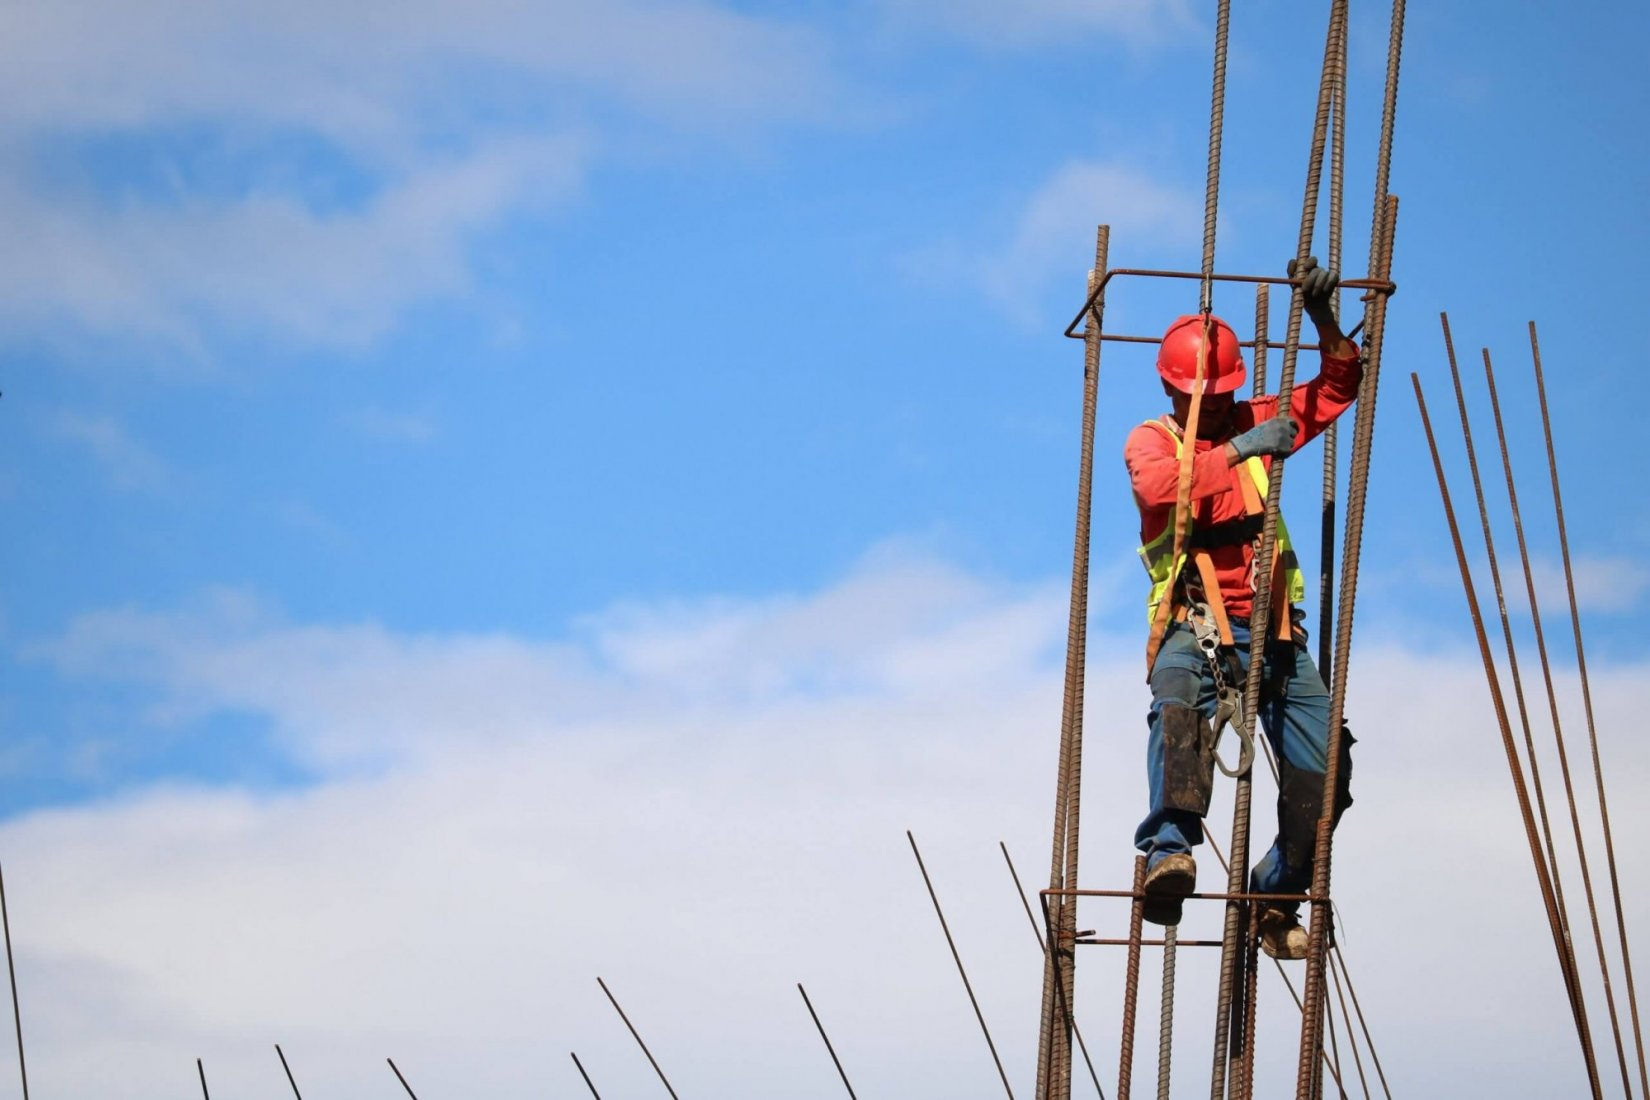 Construction worker at risk for fall injuries